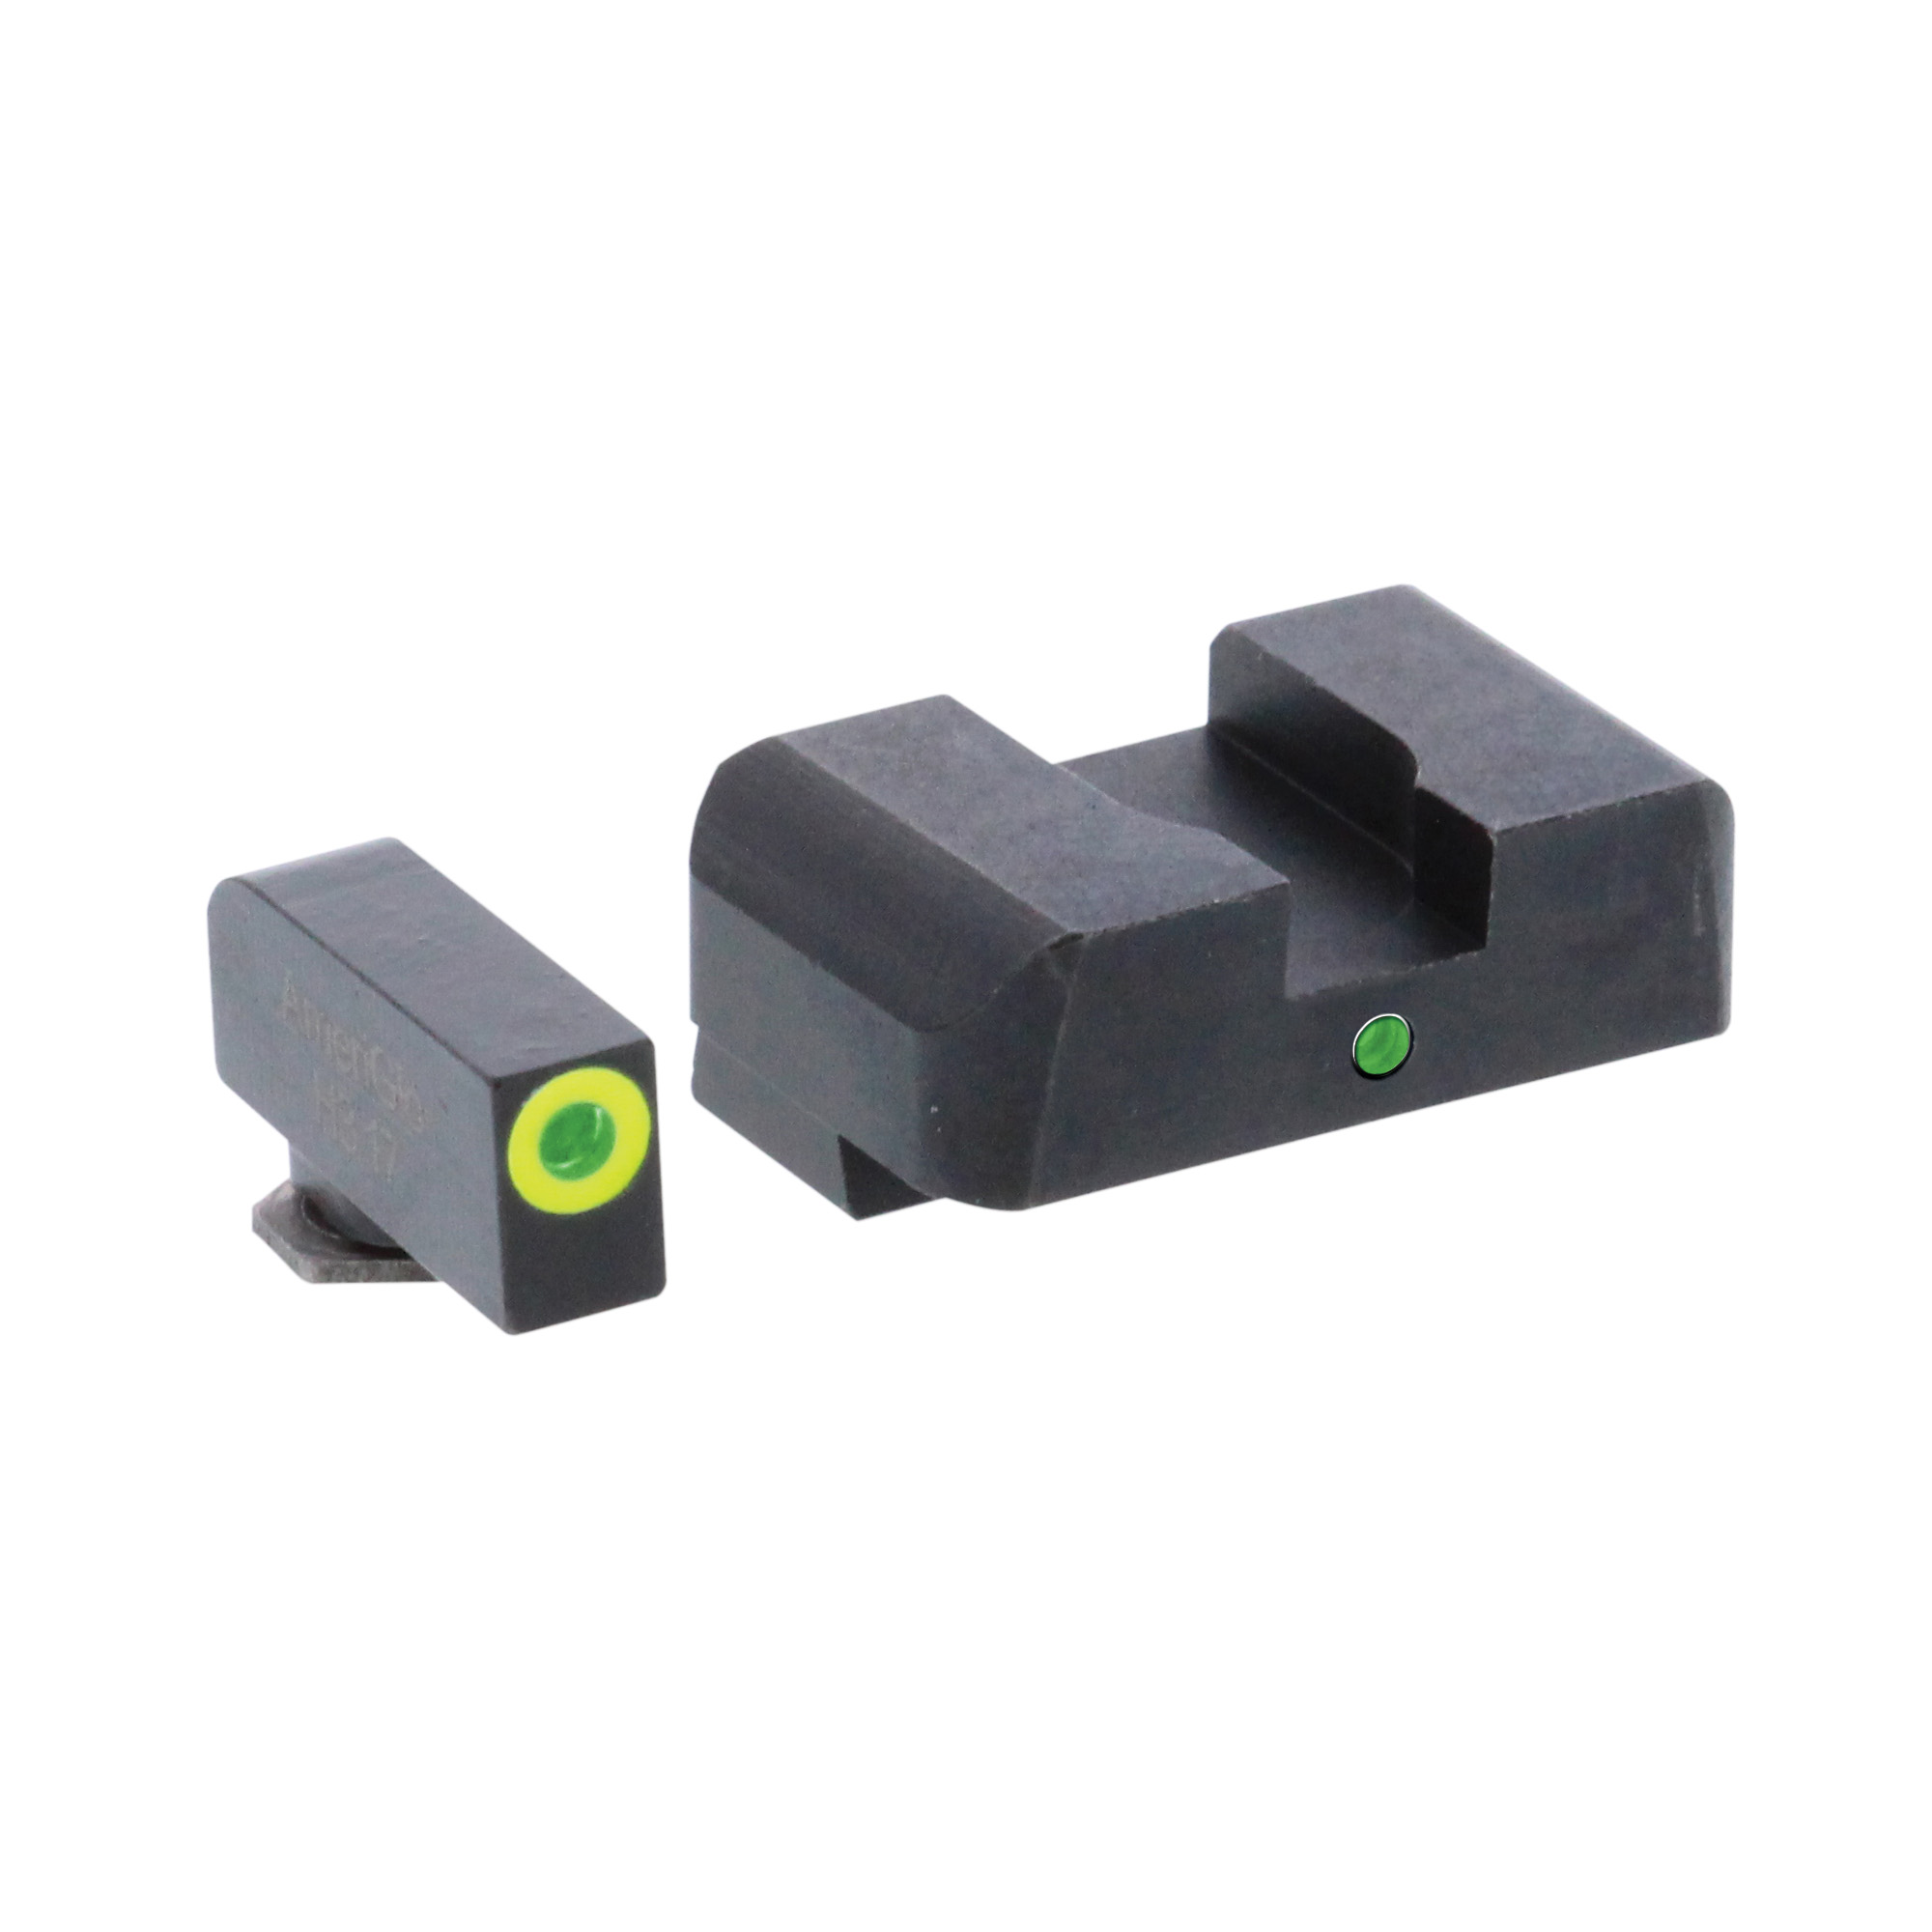 """Sight set with green tritium lamp front"""" one green tritium lamp rear (centered below notch) for Glocks. Designed for simple front sight acquisition while retaining rear illumination."""